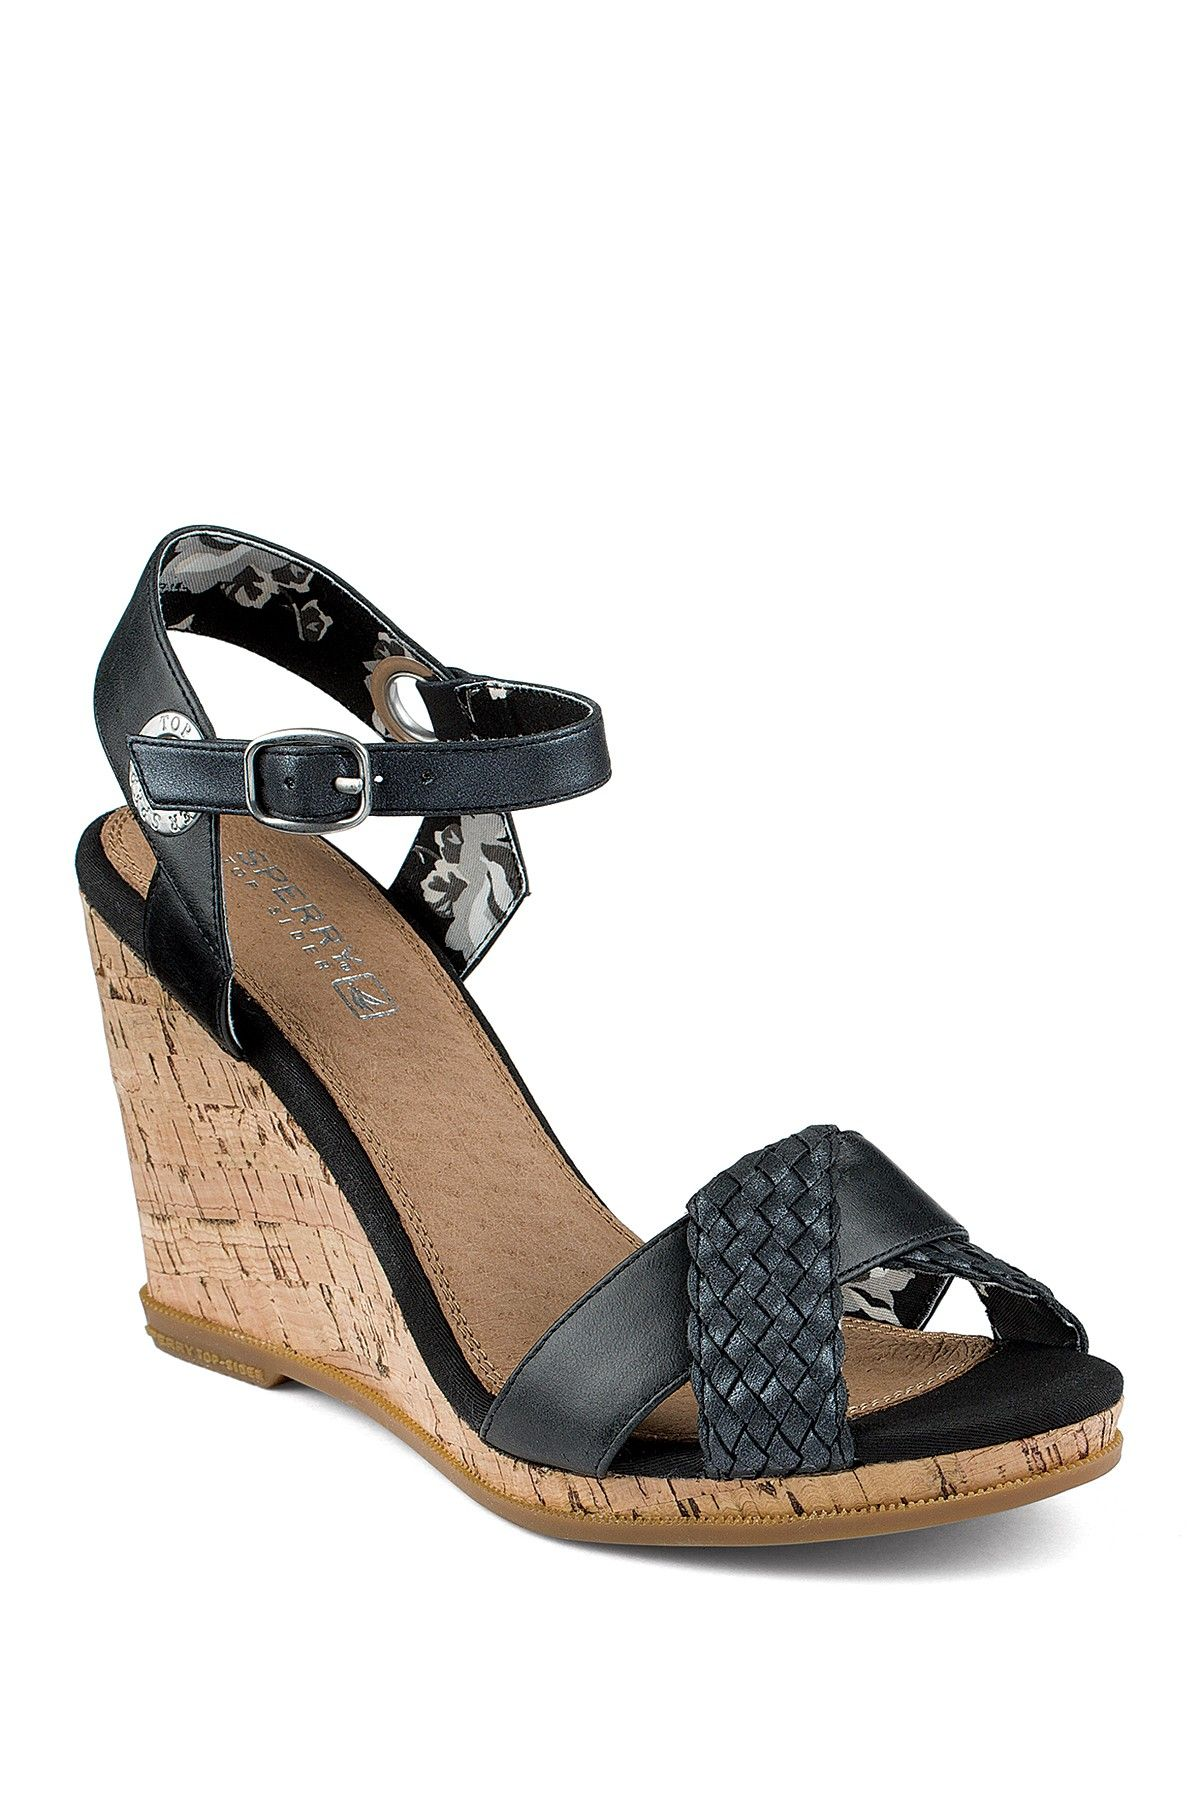 Sperry saylor wedge sandal sperry top sider top sider and wedge